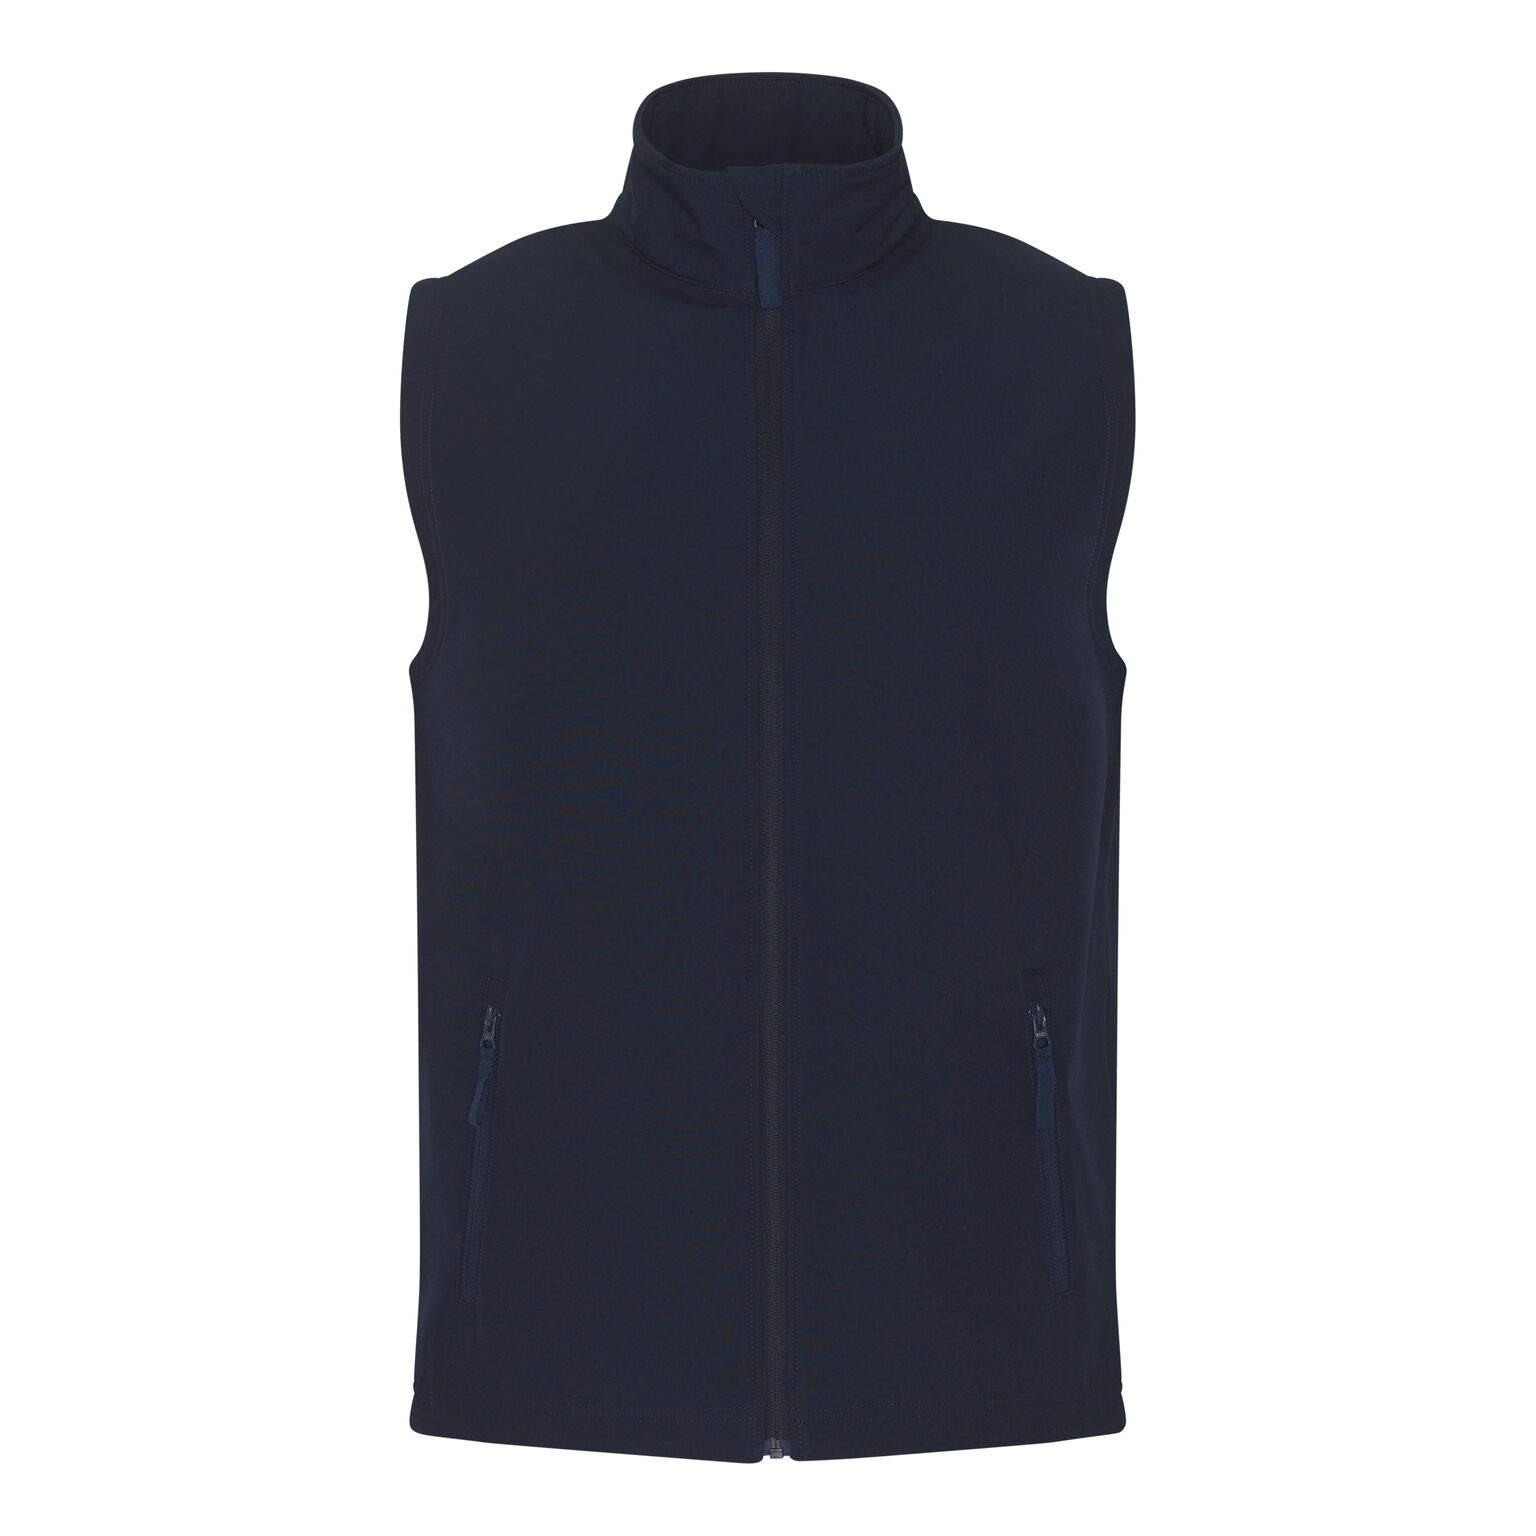 Soft Shell Gilet - £27.95 including 1 logo embroideryAvailable in Unisex & Lady FitAvailable in Black, Navy, Red, Seal Grey